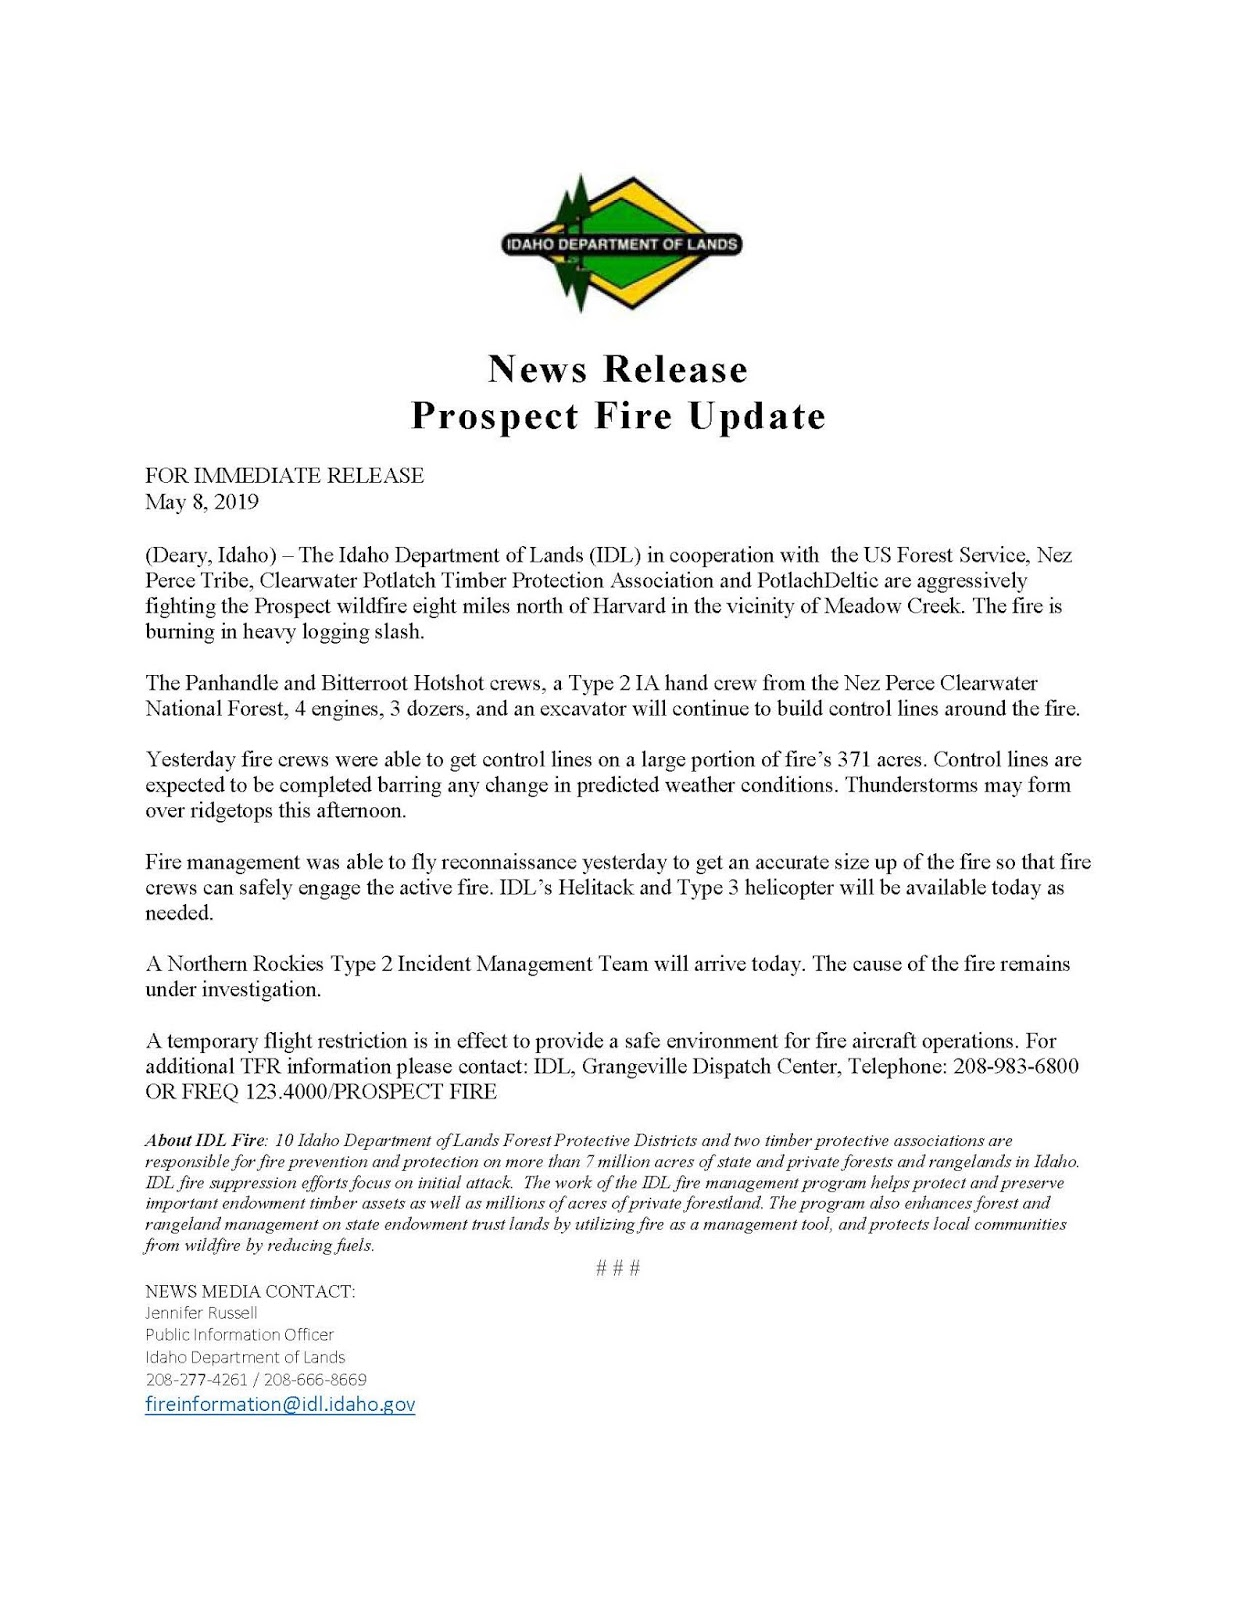 prospect fire update may 8th 2019 [ 1237 x 1600 Pixel ]